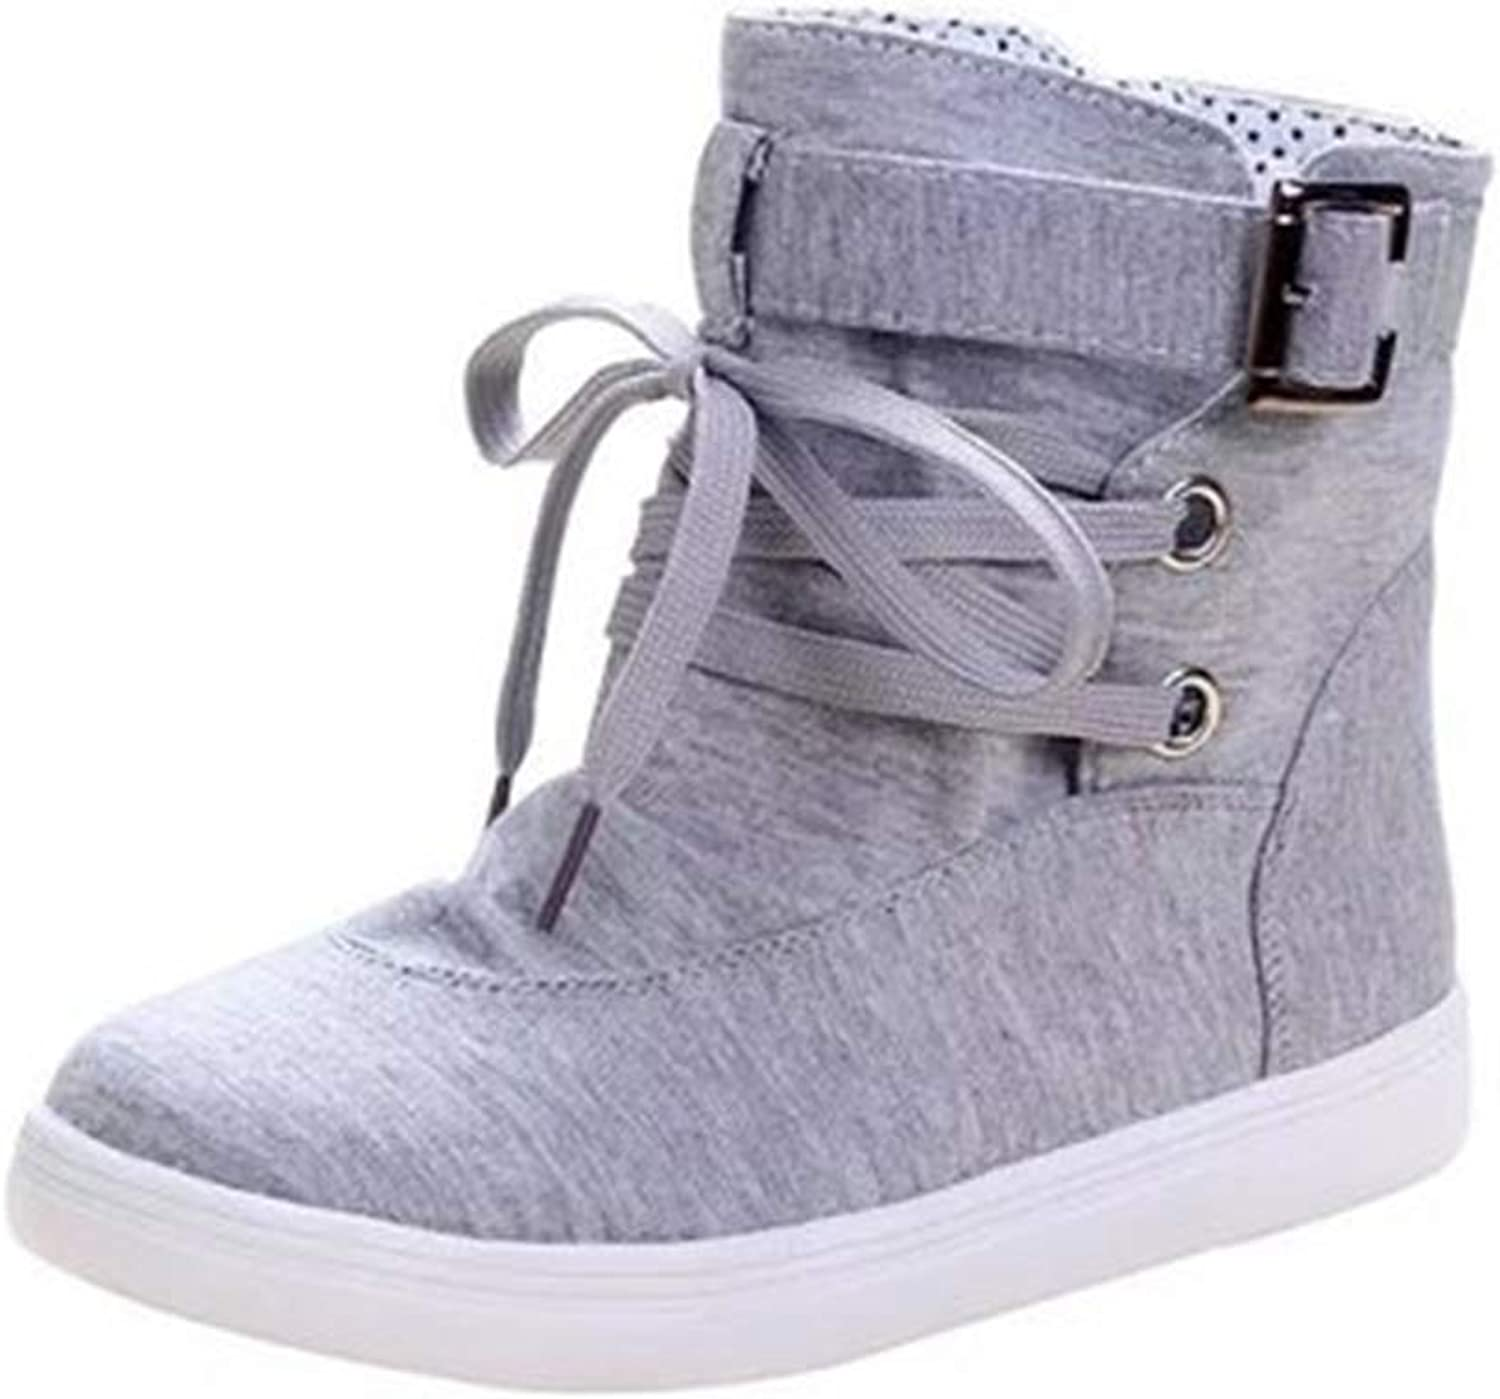 Unisex High Top Classic Canvas Sneakers Fashion Lace-up shoes